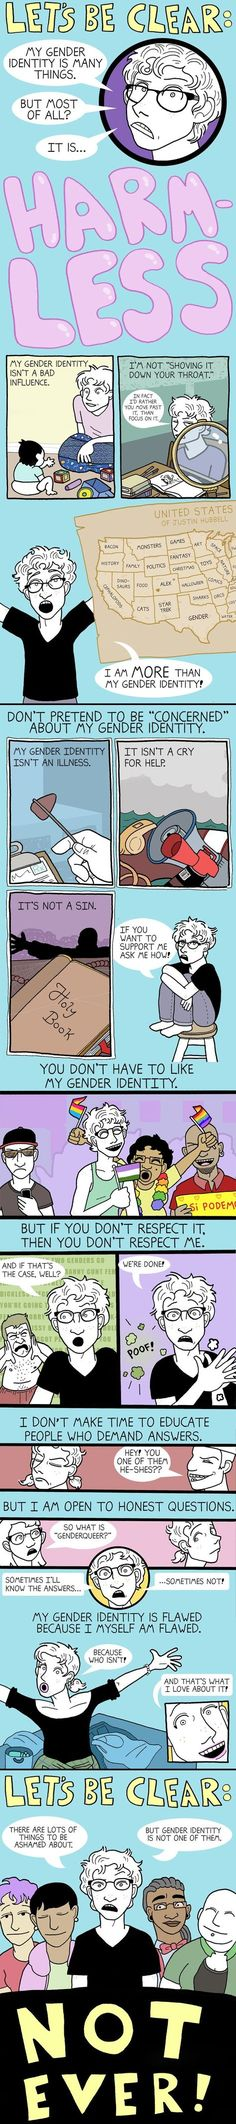 Gender identity is individual and none of your business.